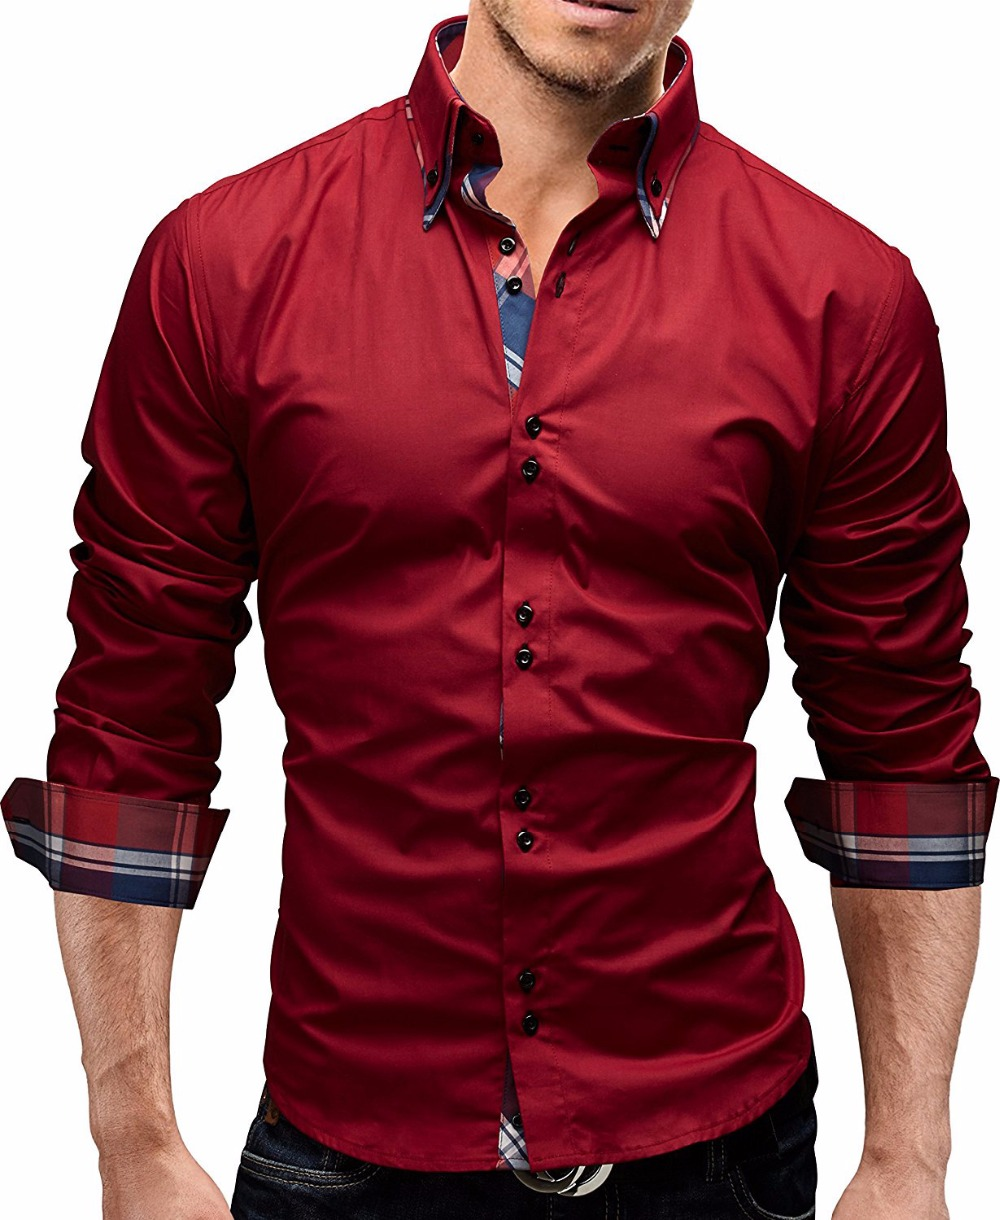 Men shirt 2017 spring new brand business men 39 s slim fit for Mens slim hawaiian shirt